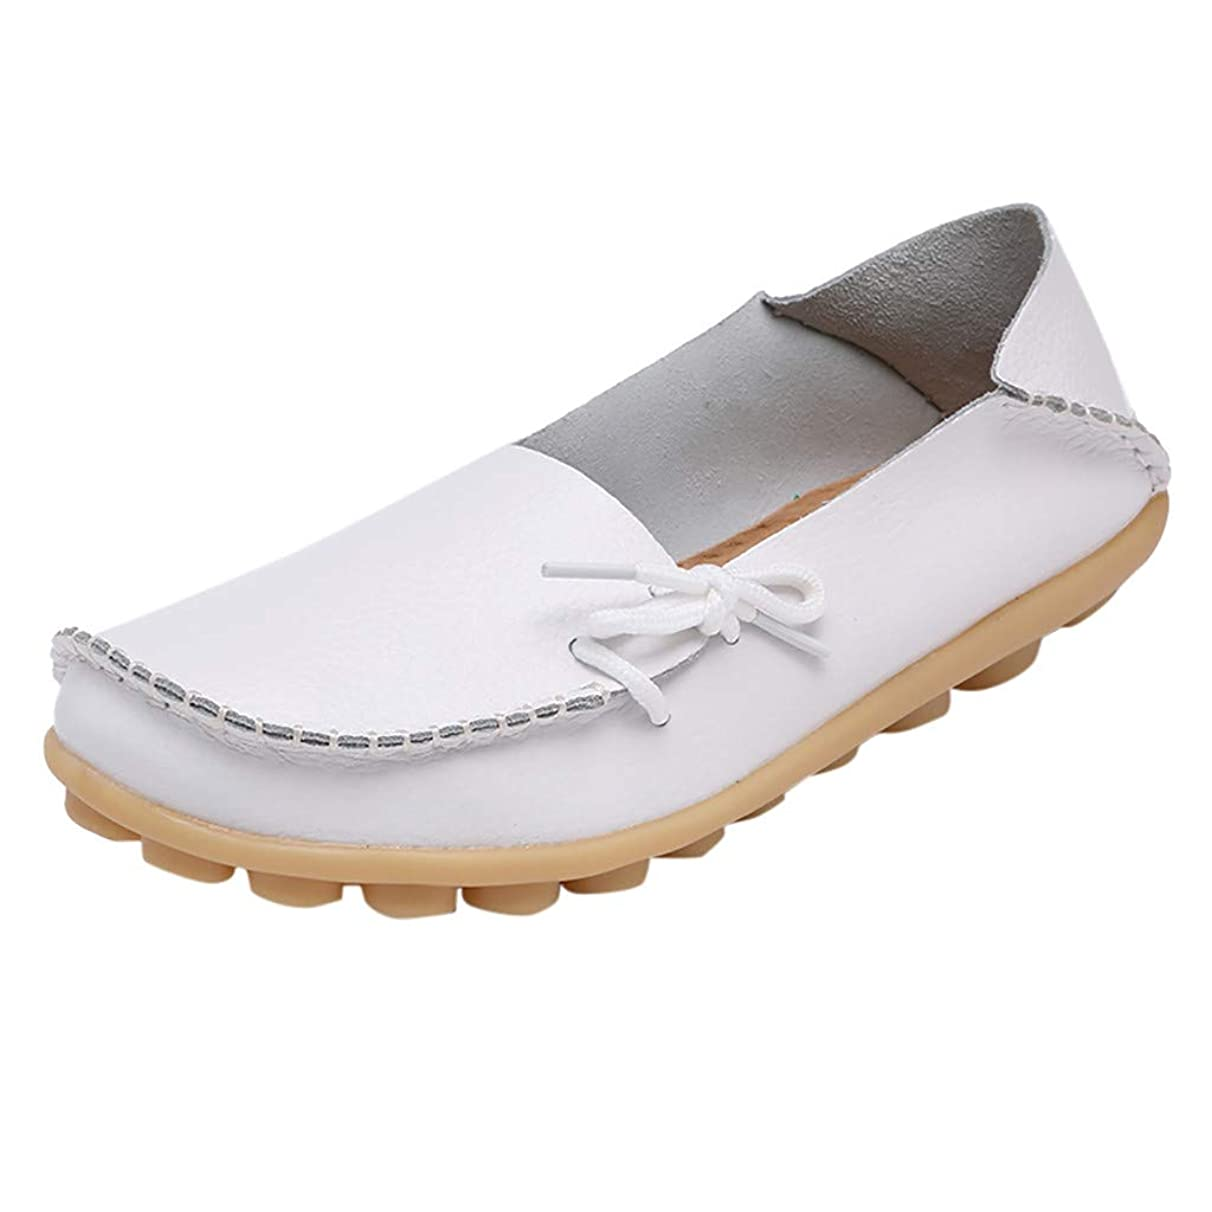 Tantisy ??? Women's Leather Loafers Casual Comfy Slip On Shoes Mocassins Flats Shoes Boat Shoes Driving Loafers Shoes